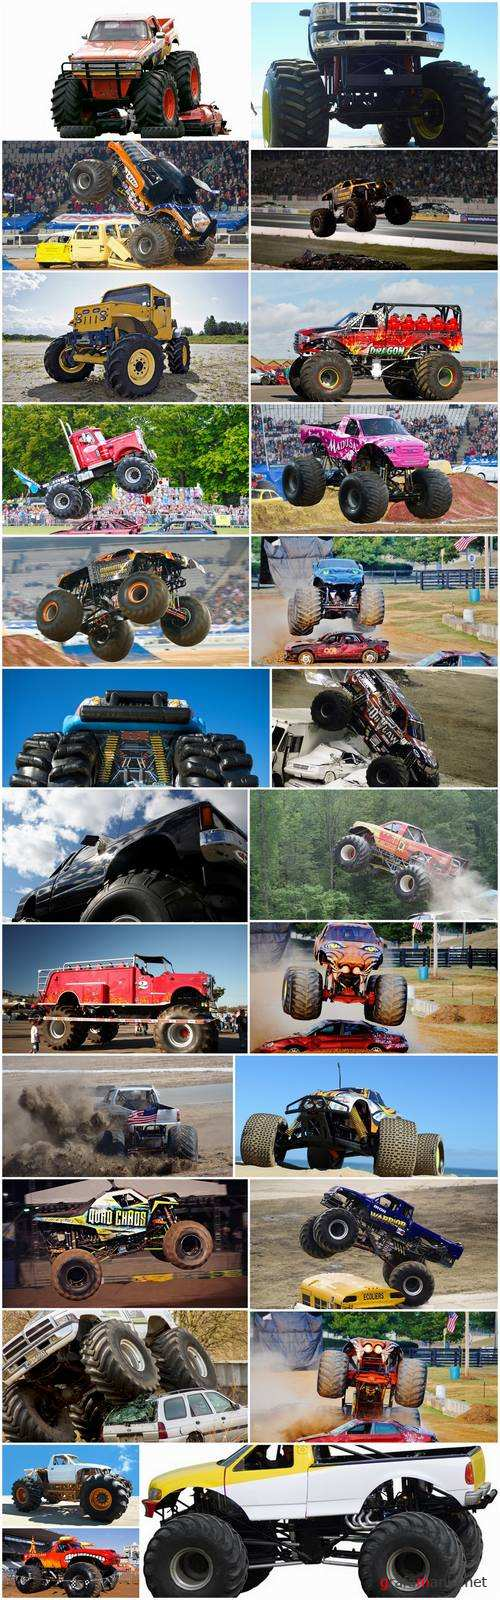 Monster truck lorry car on big wheels bigfoot 25 HQ Jpeg